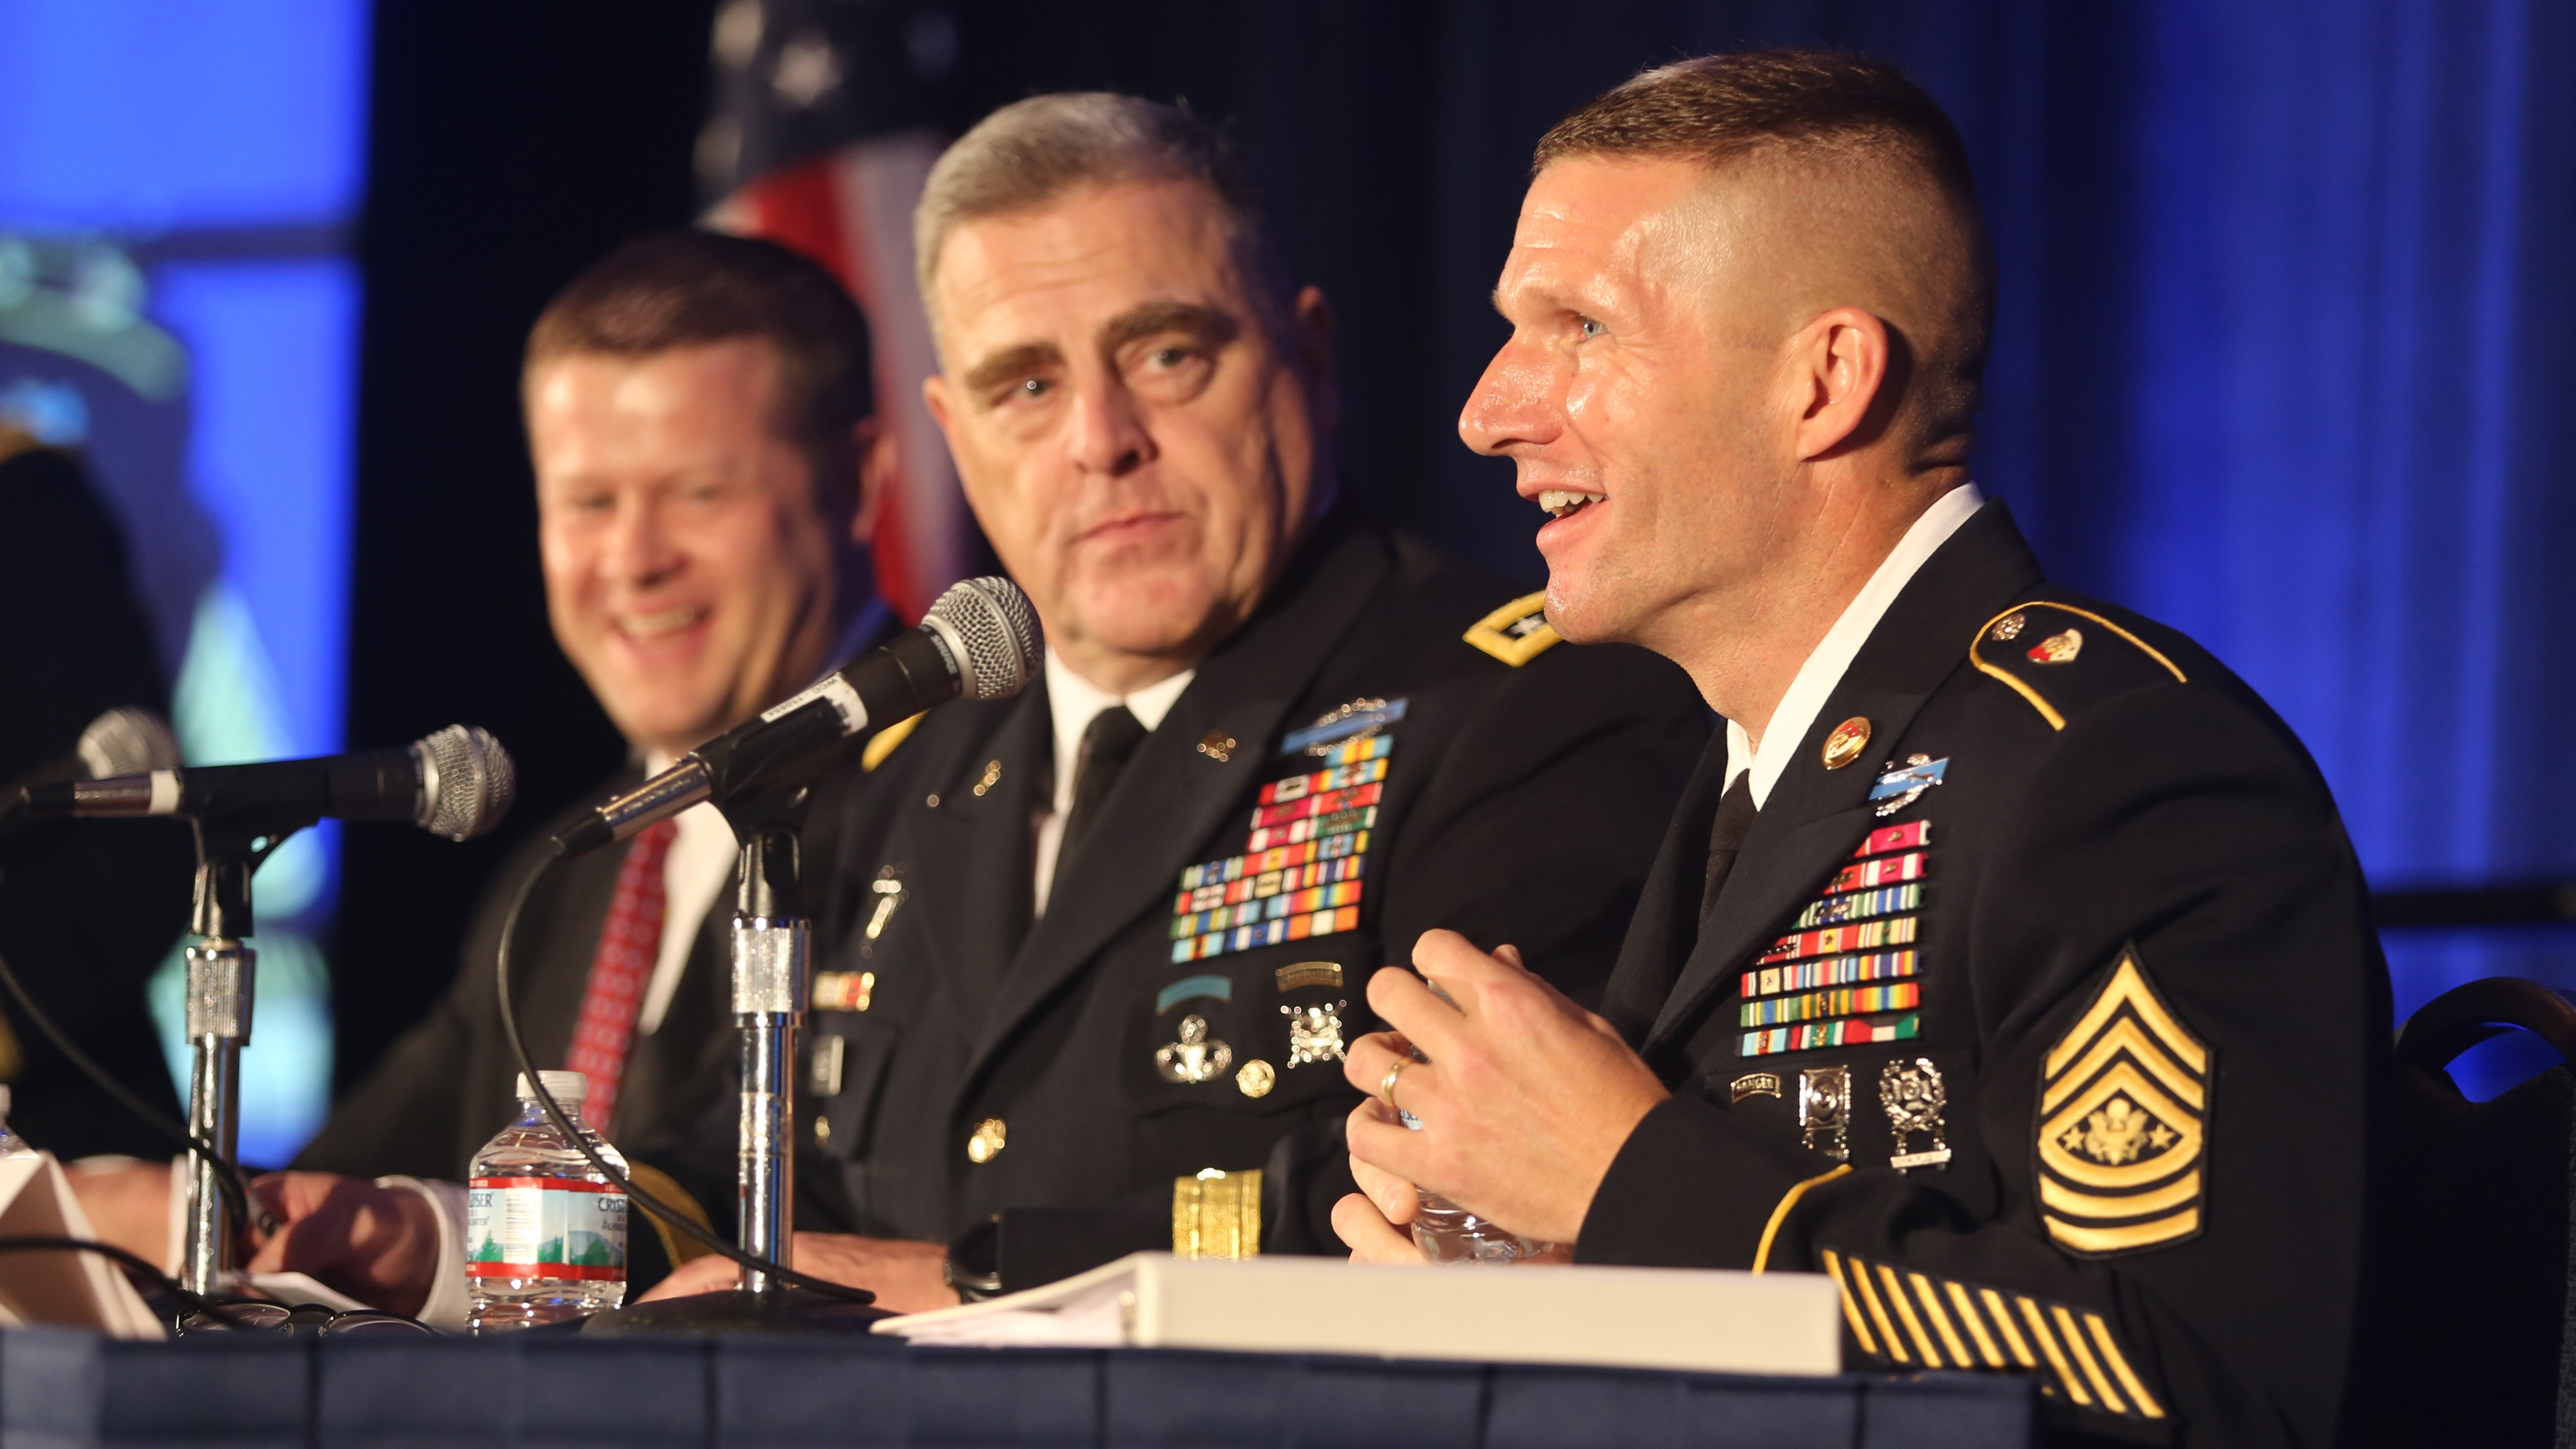 Army leaders reaffirm Family readiness as high priority | Article